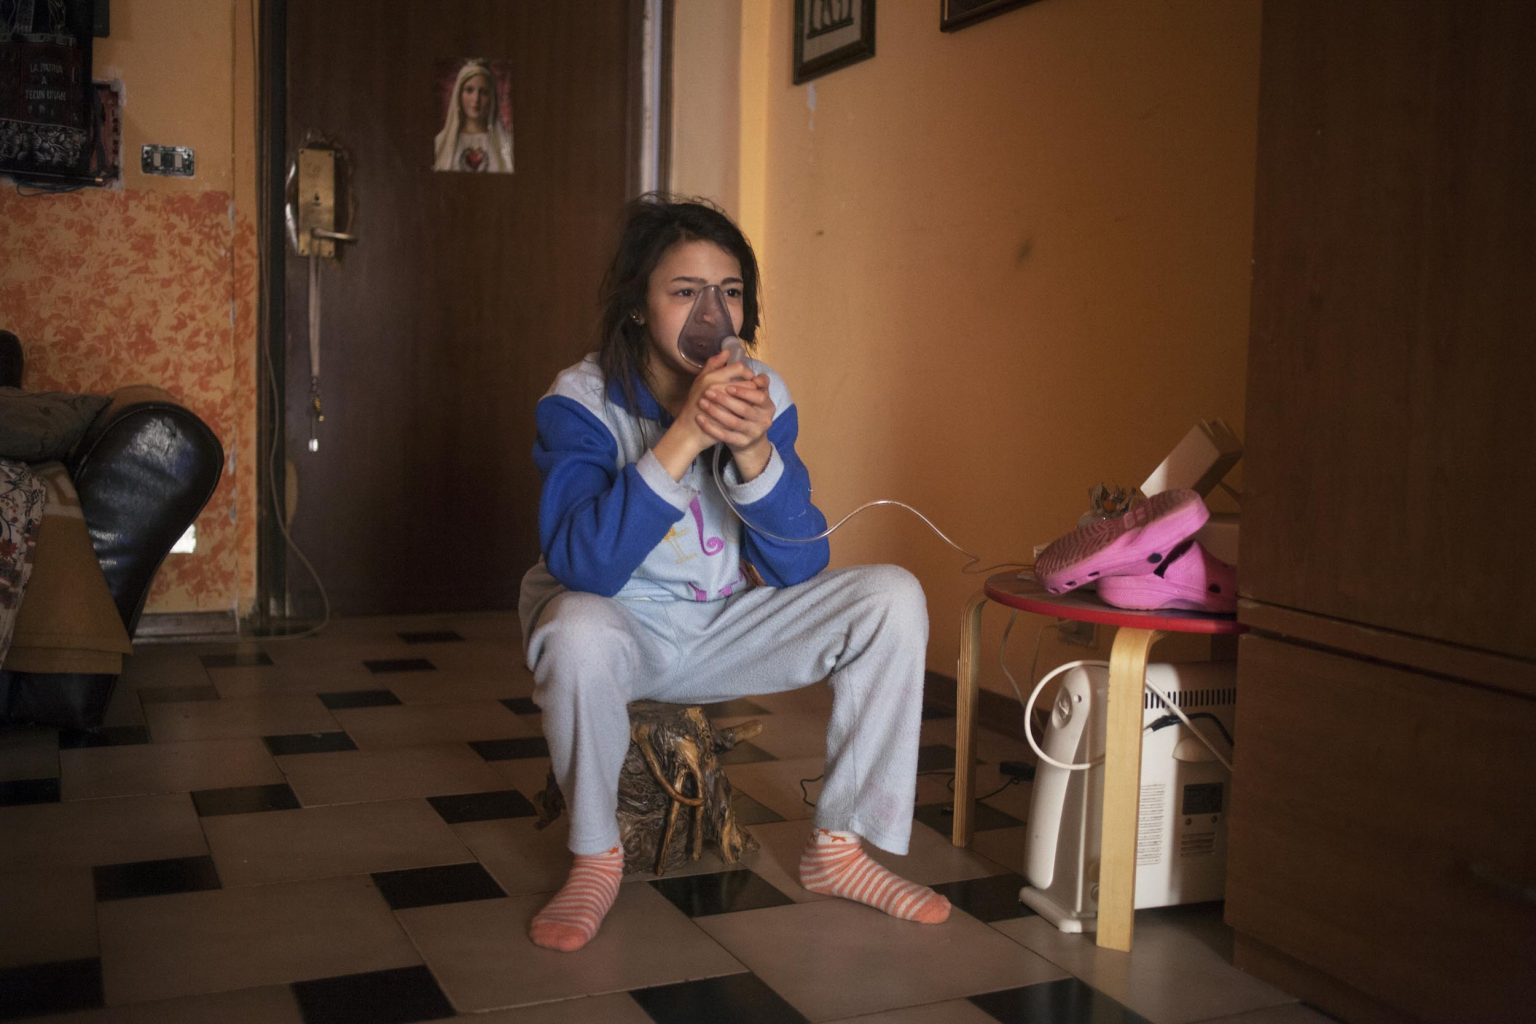 Federica suffers from an allergic form of asthma that is linked to the pollution of the area. Castel Volturno is one of the most polluted cities in Italy, a place where criminal clans have illegally buried large quantities of toxic wastes.